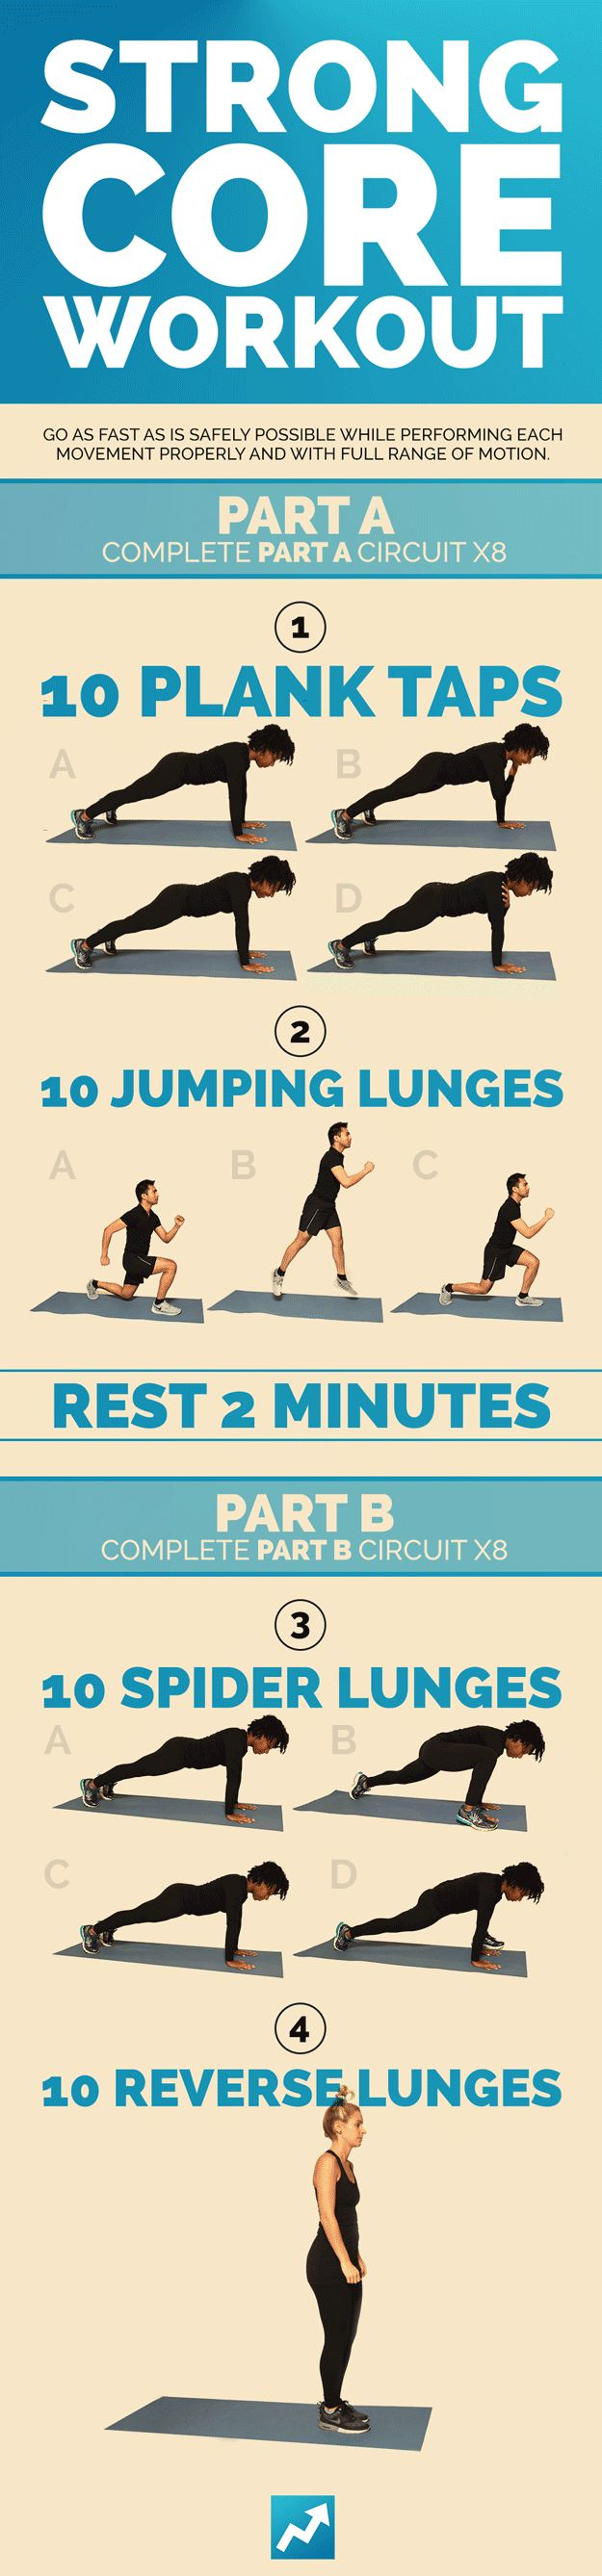 Strong Core Workout | 9 Quick Total-Body Workouts You Can Do Literally Anywhere